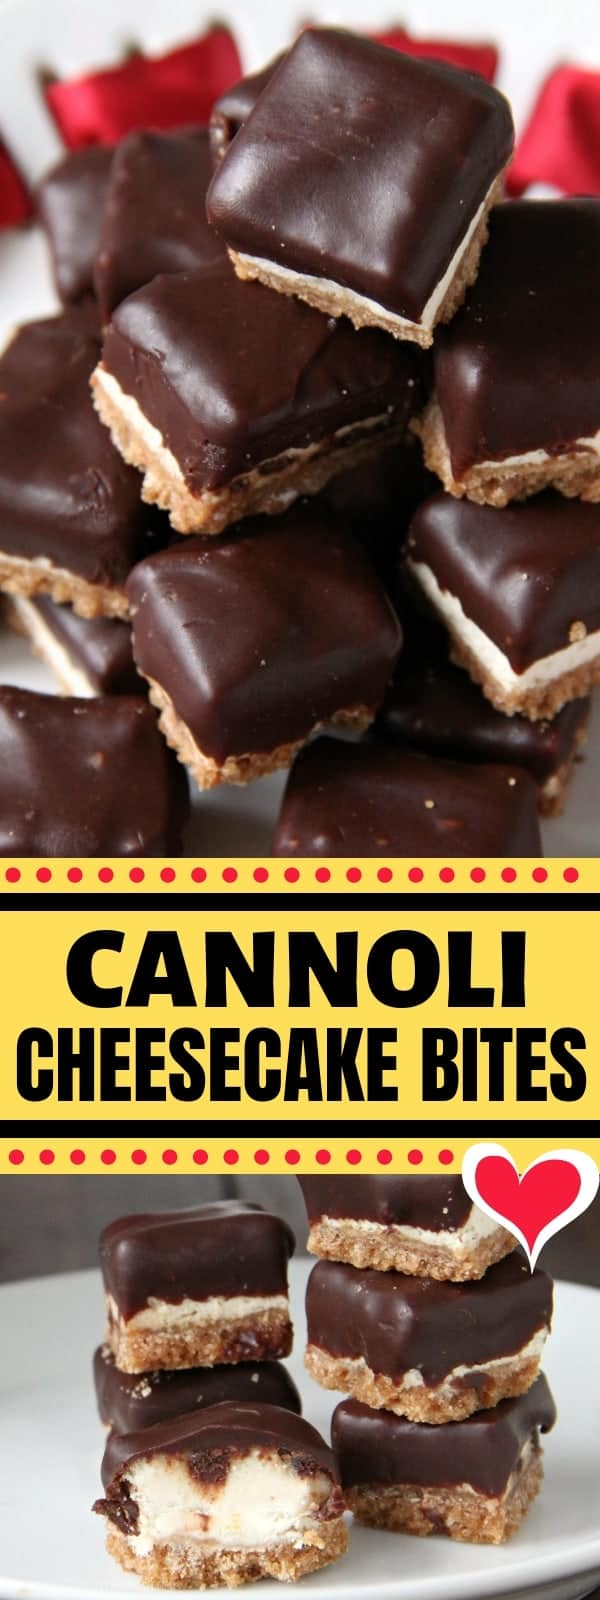 Cannoli Cheesecake Bites pin collage